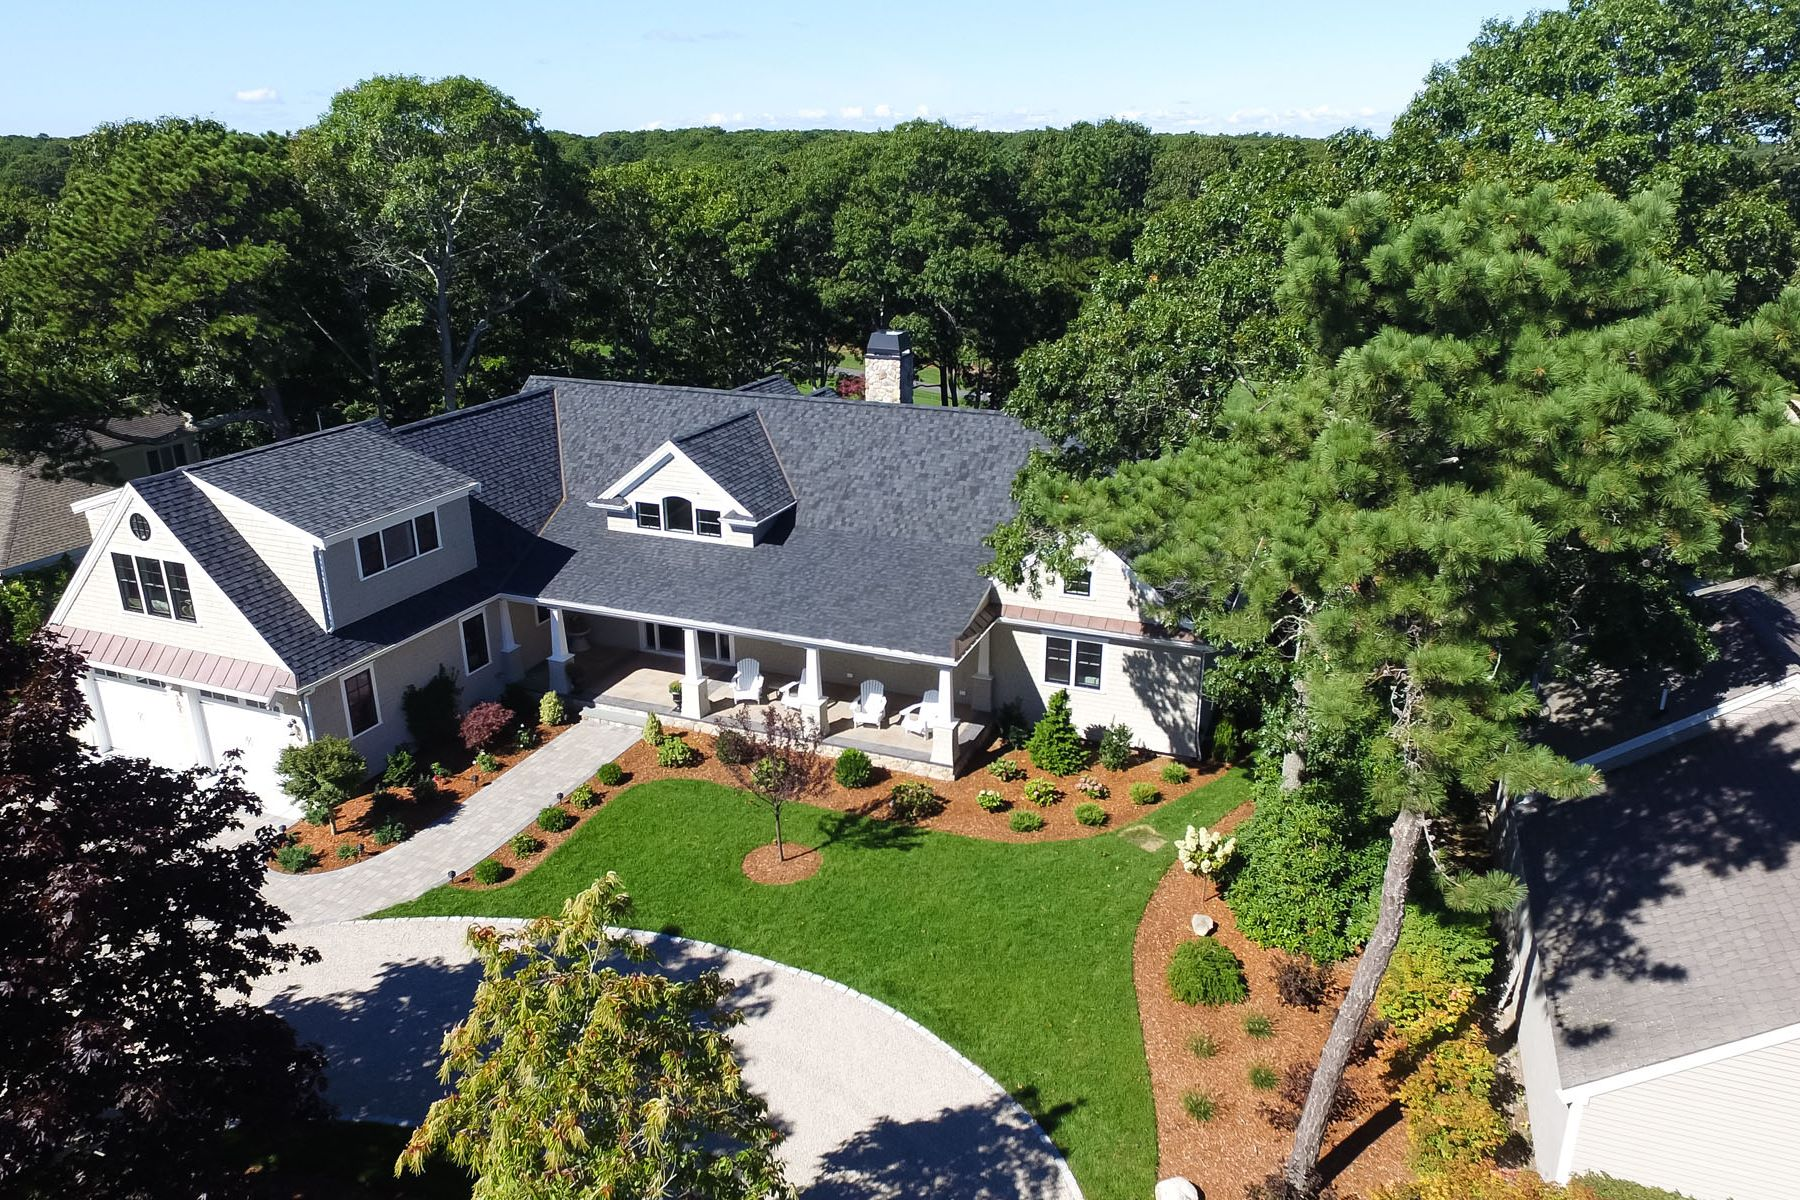 Single Family Home for Sale at DISTINCTIVE ELEGANCE 101 Greensward Road New Seabury, 02649 United States